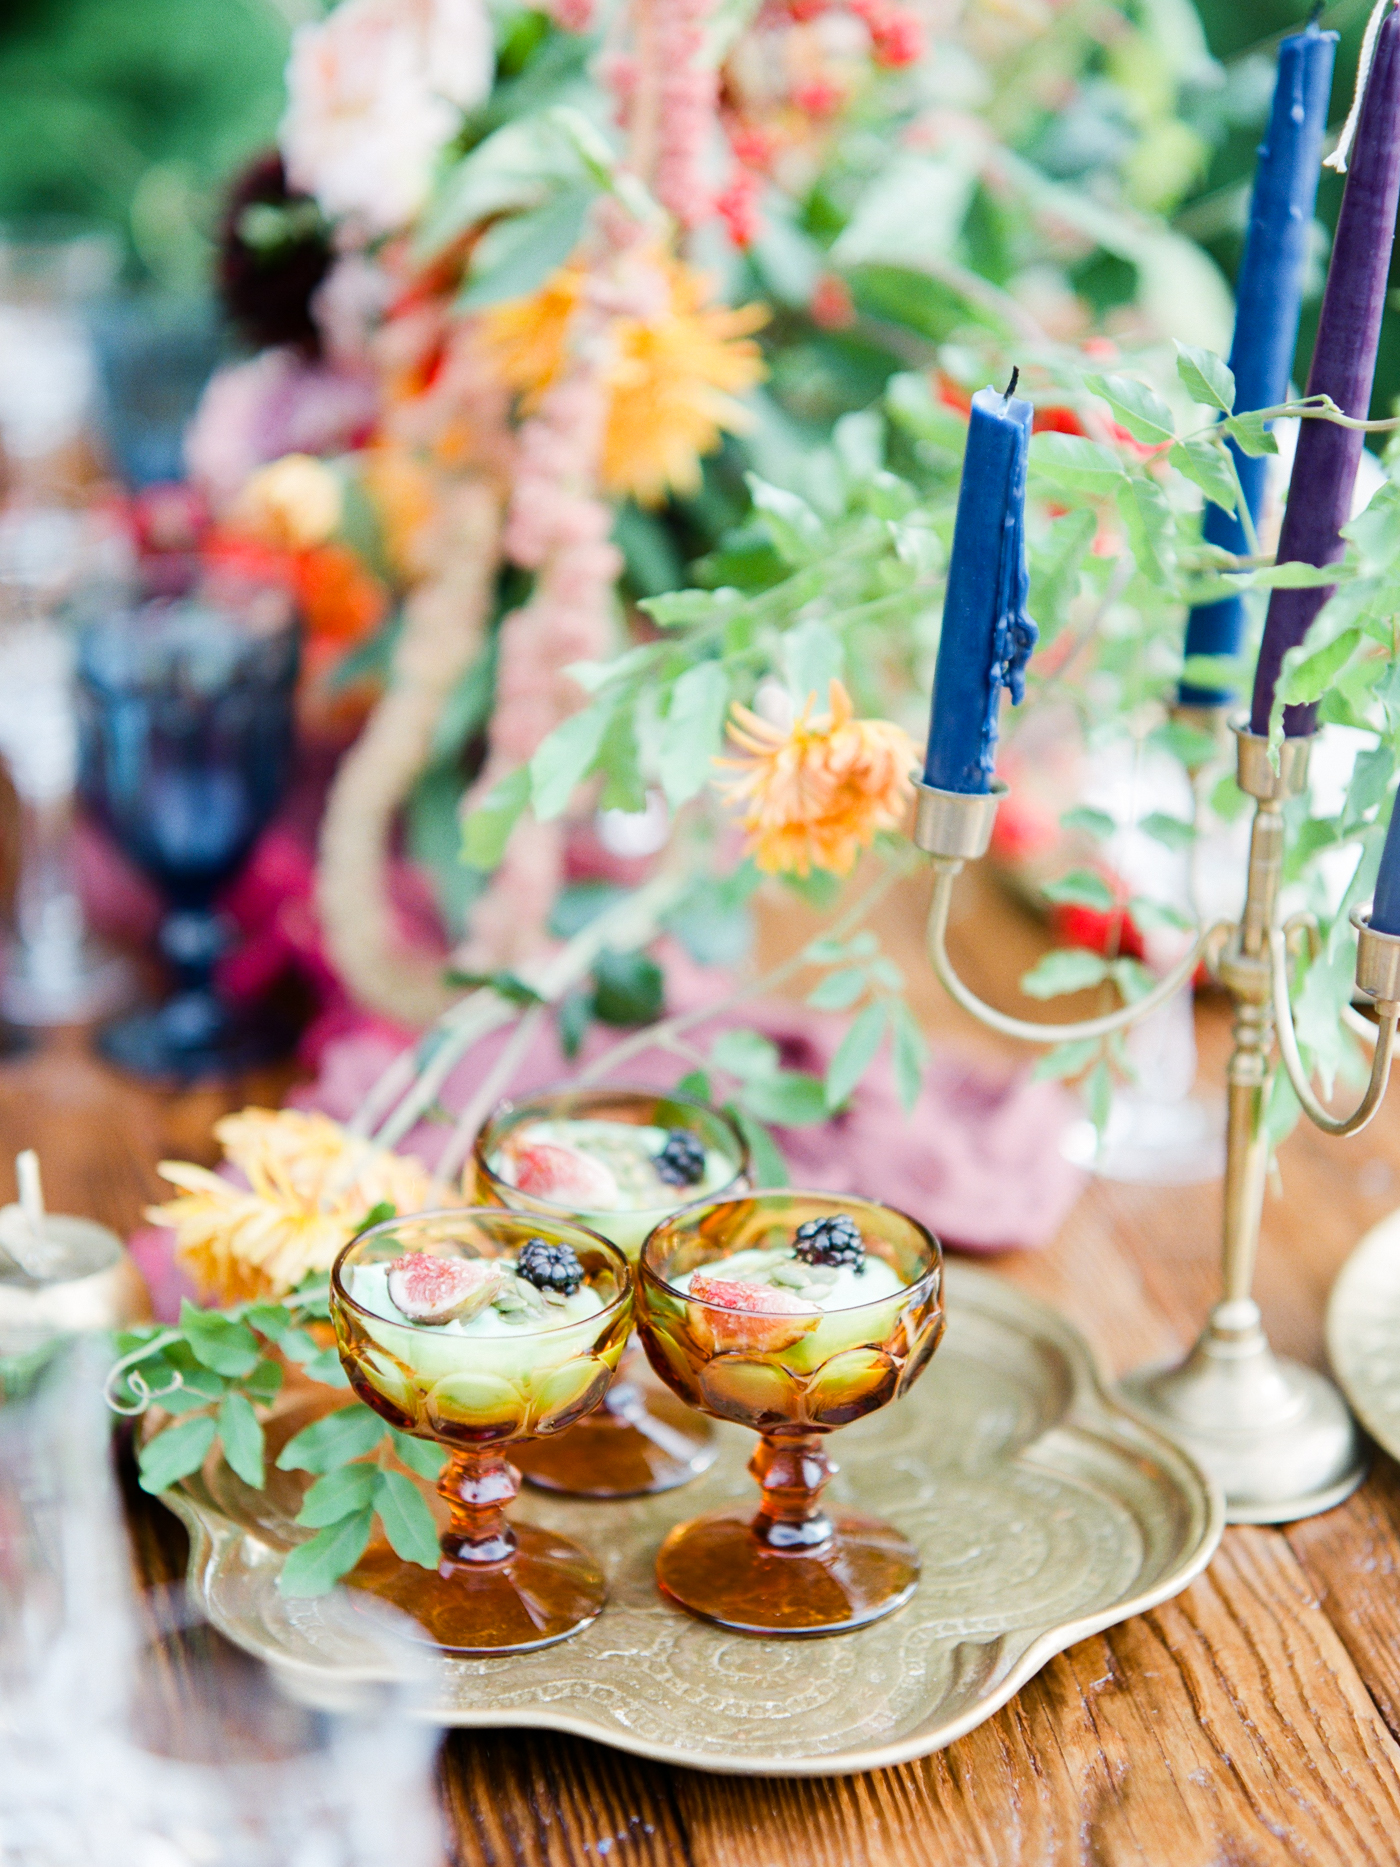 photography by:  Schon Photography  // florals by:  Fresh Design Florist  // tablescape by:  Modern Relics Rentals  // sweets by:  Love Bites by Erika  // venue:  The Lakehouse Inn